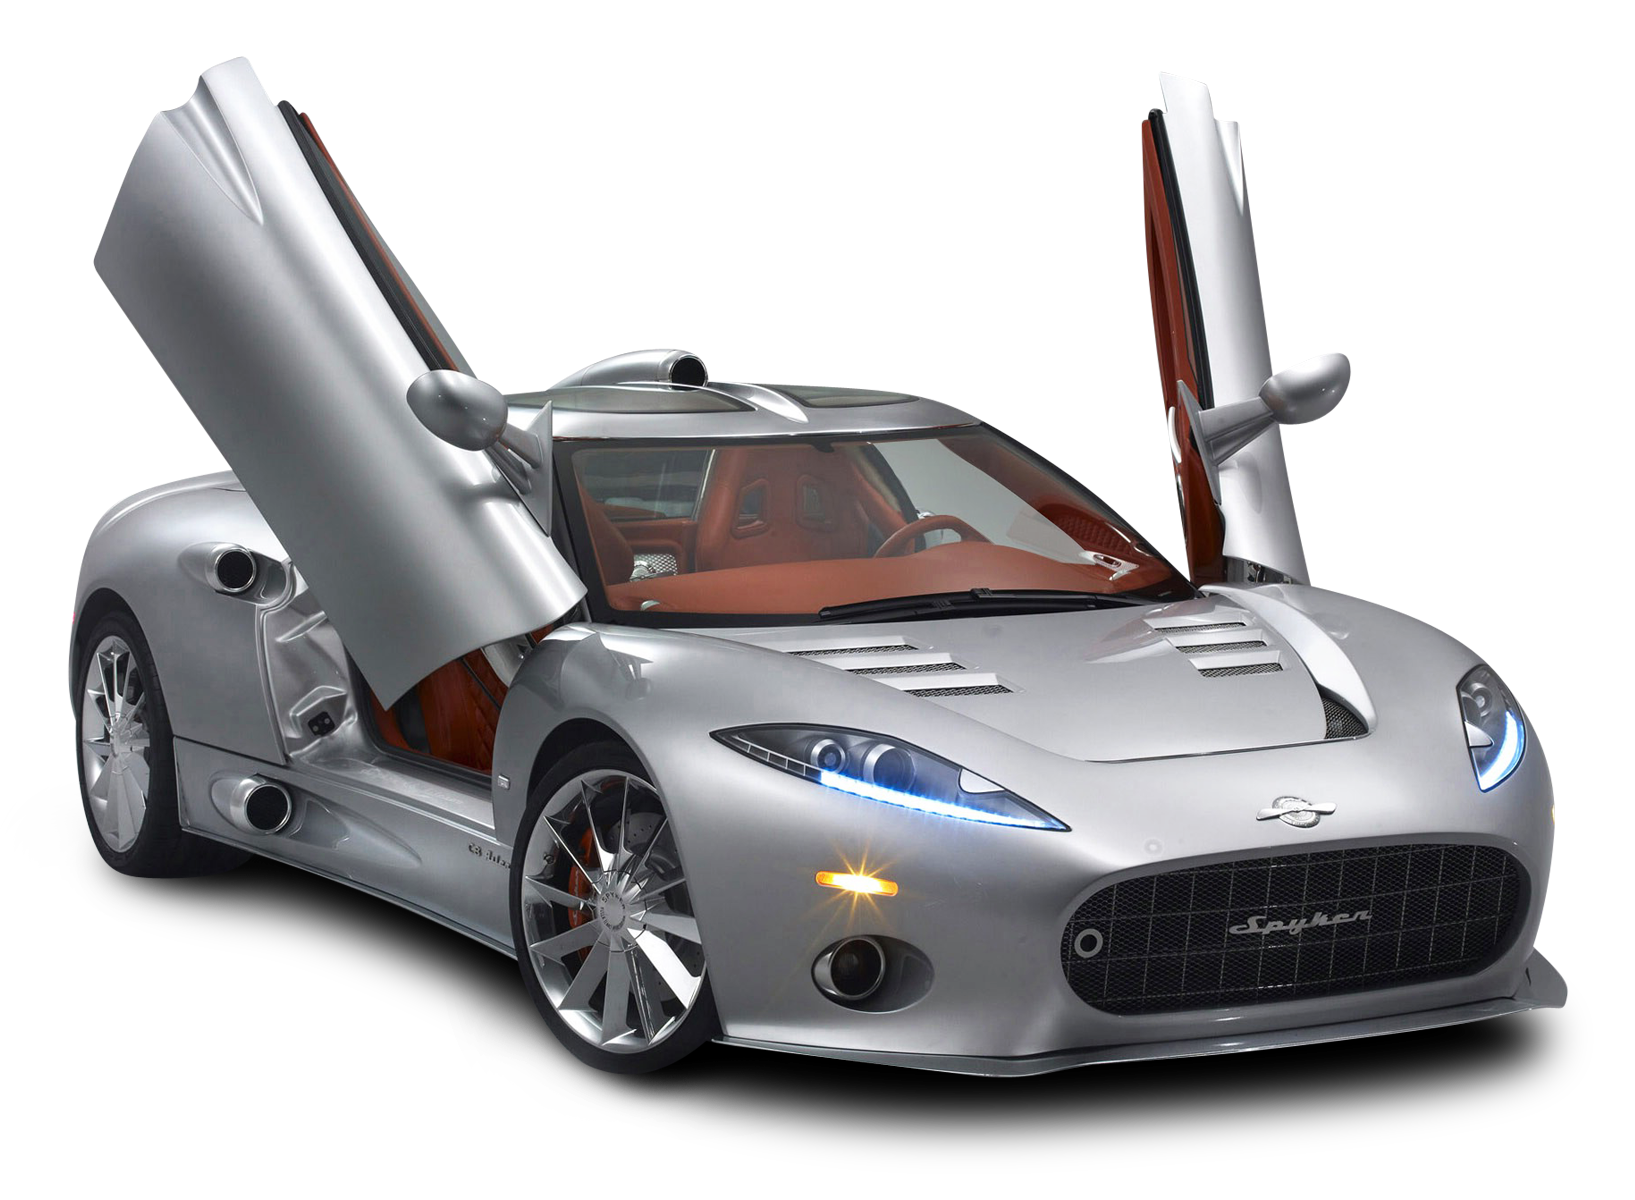 Spyker C8 Silver Car PNG Image